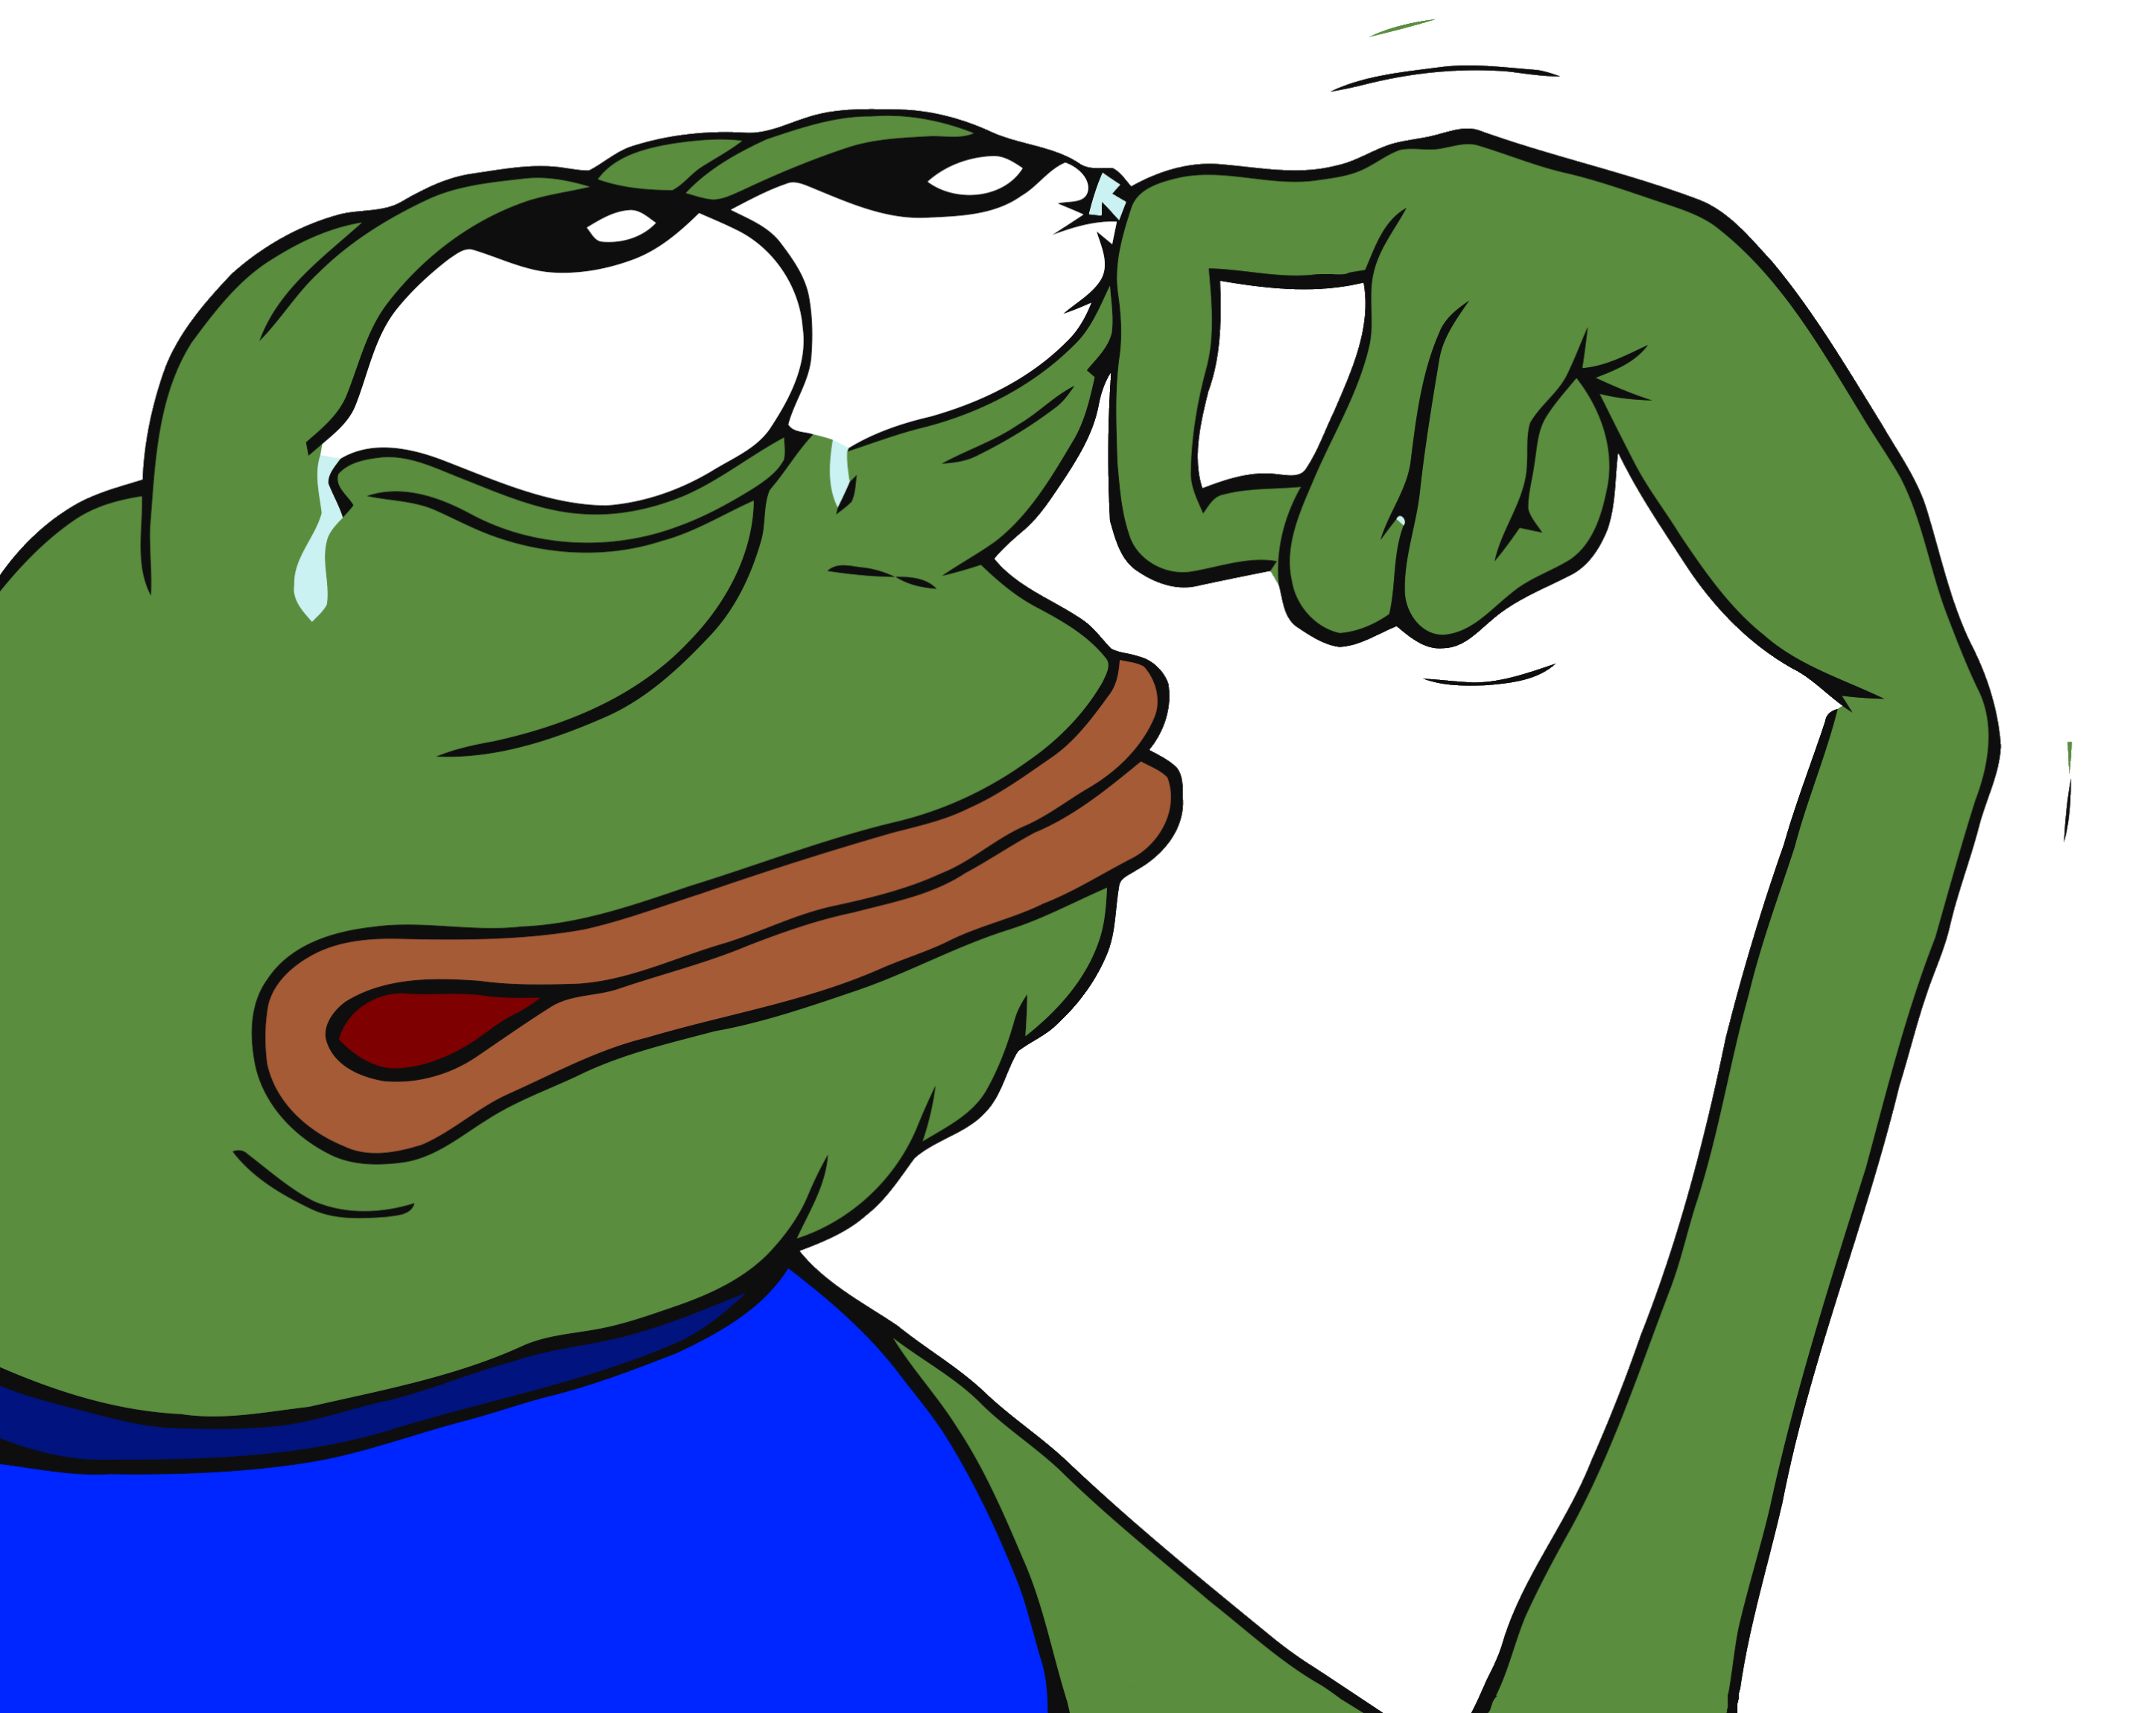 Crying meme png. Pepe transparent stickpng